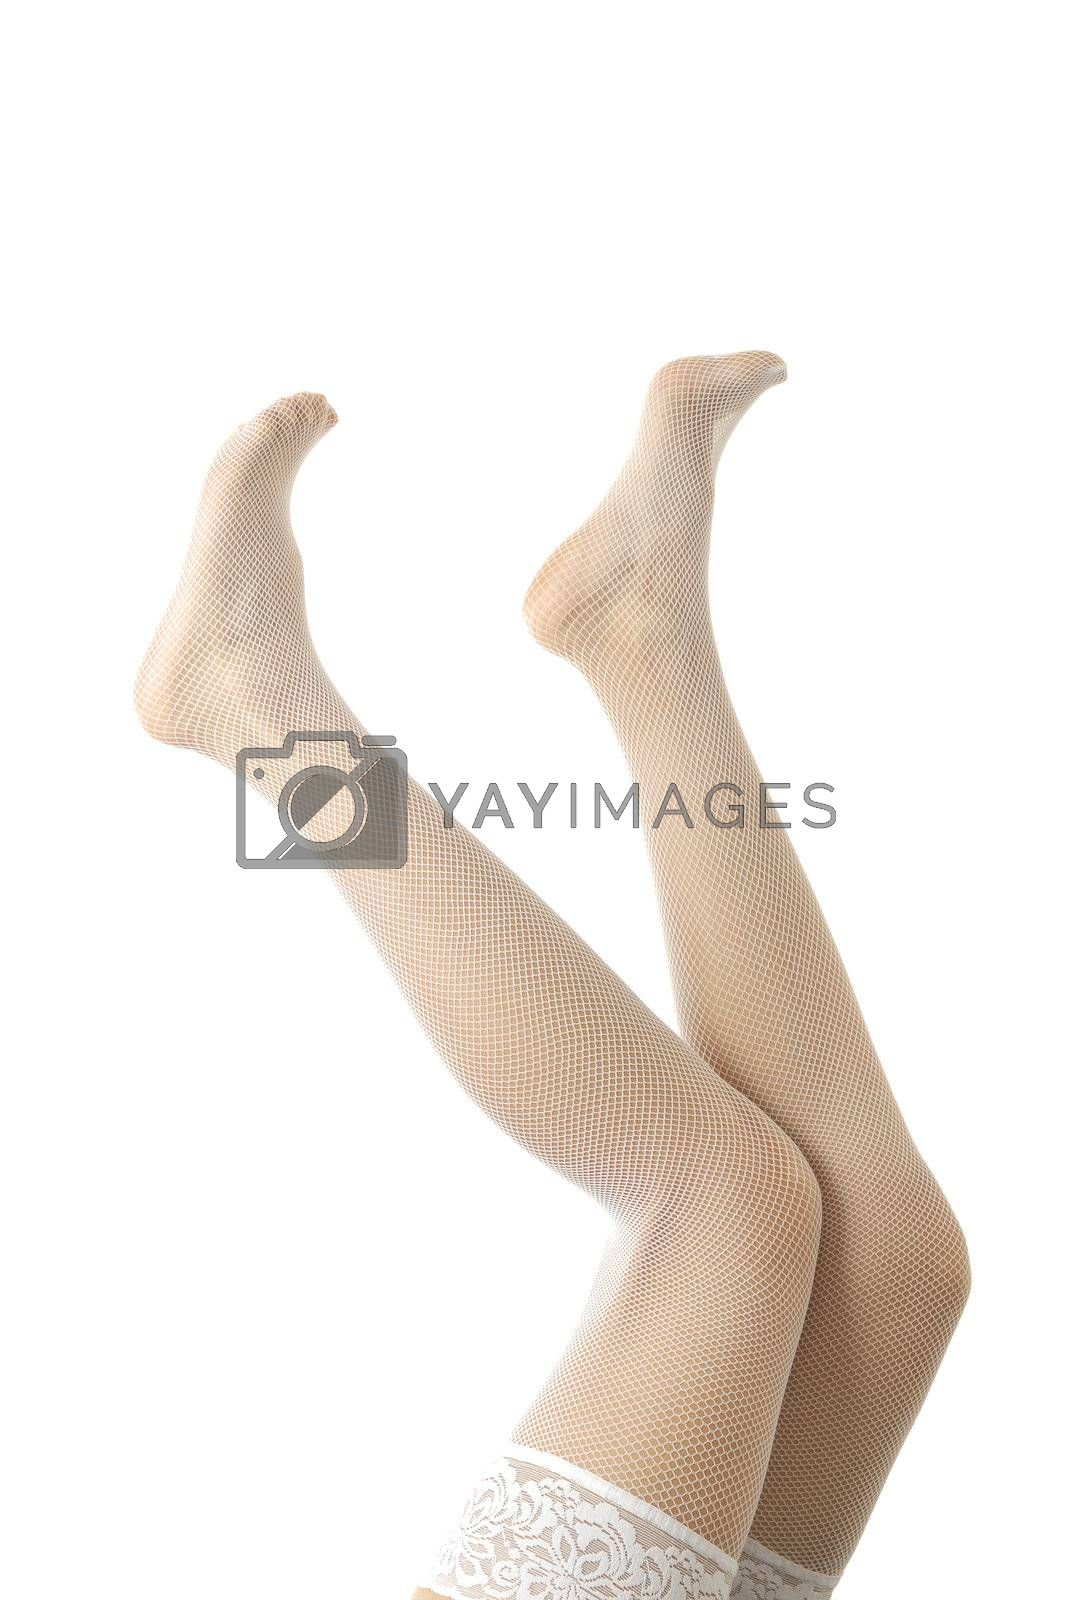 Sensuality of legs by Novic